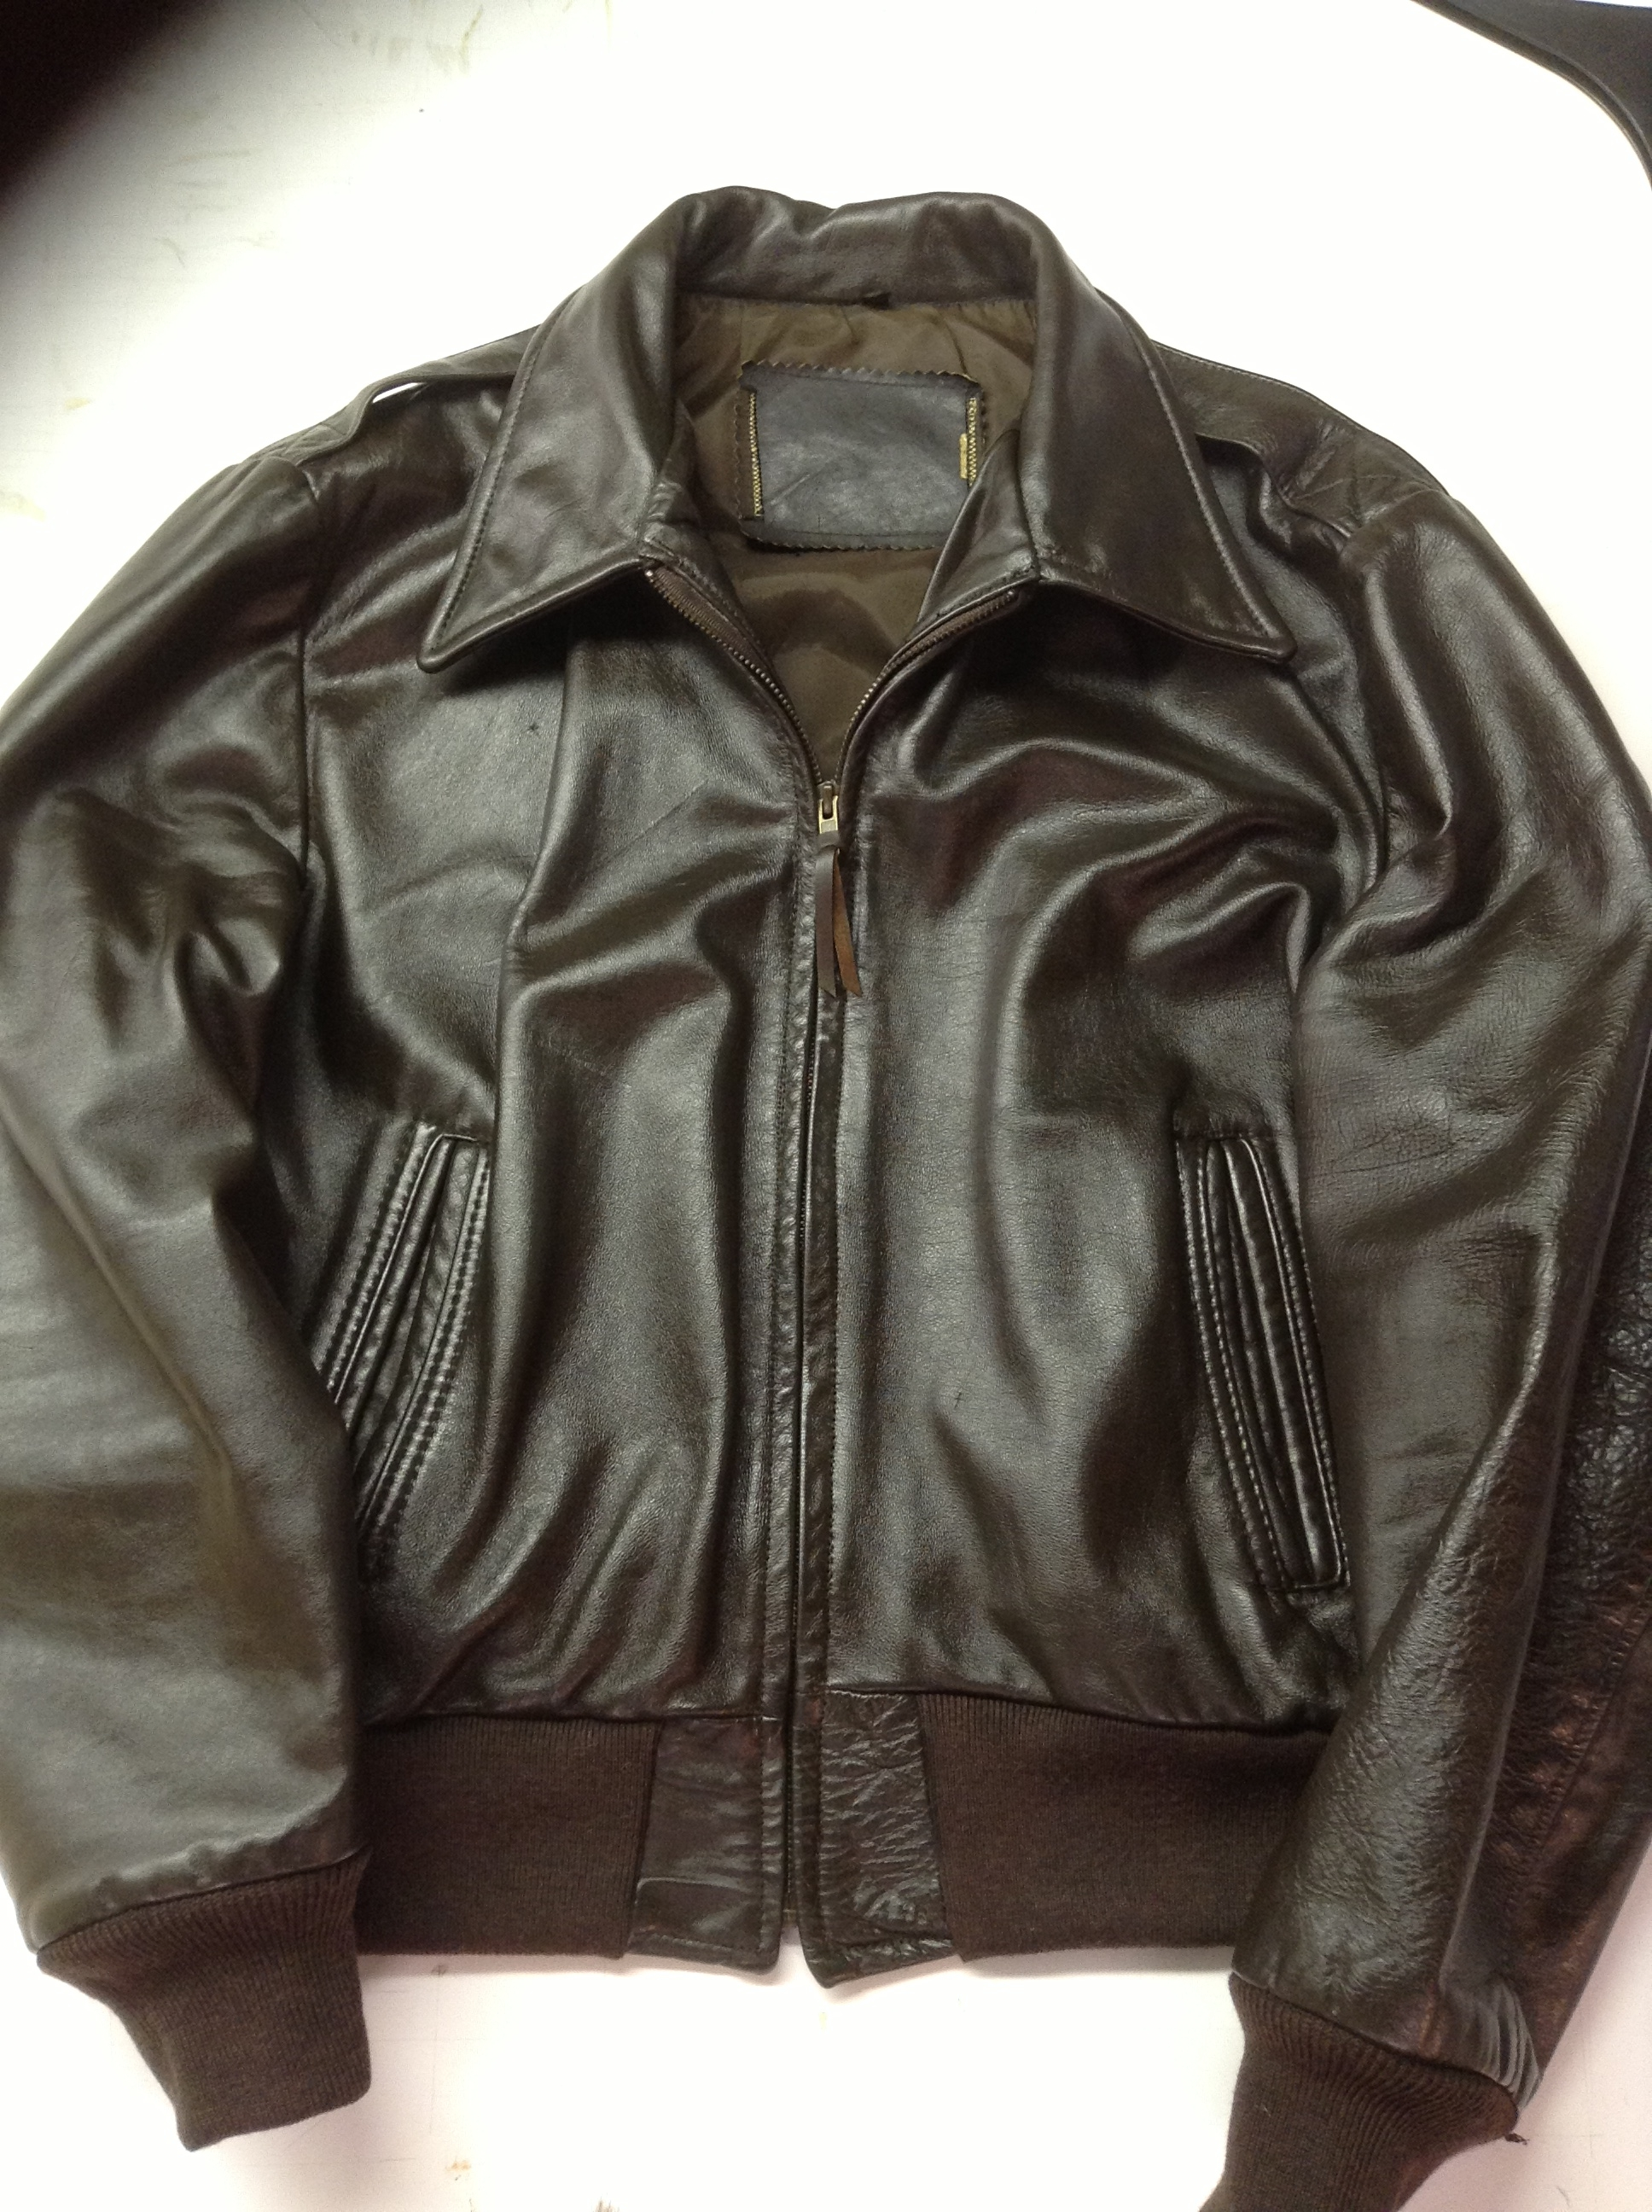 Leather jacket zip repair - Sent My Jacket To Dena And Greatleather She Replaced The Zipper Knit Cuffs And Wasteband Fixed The Liner And Cleaned The Paint Off It